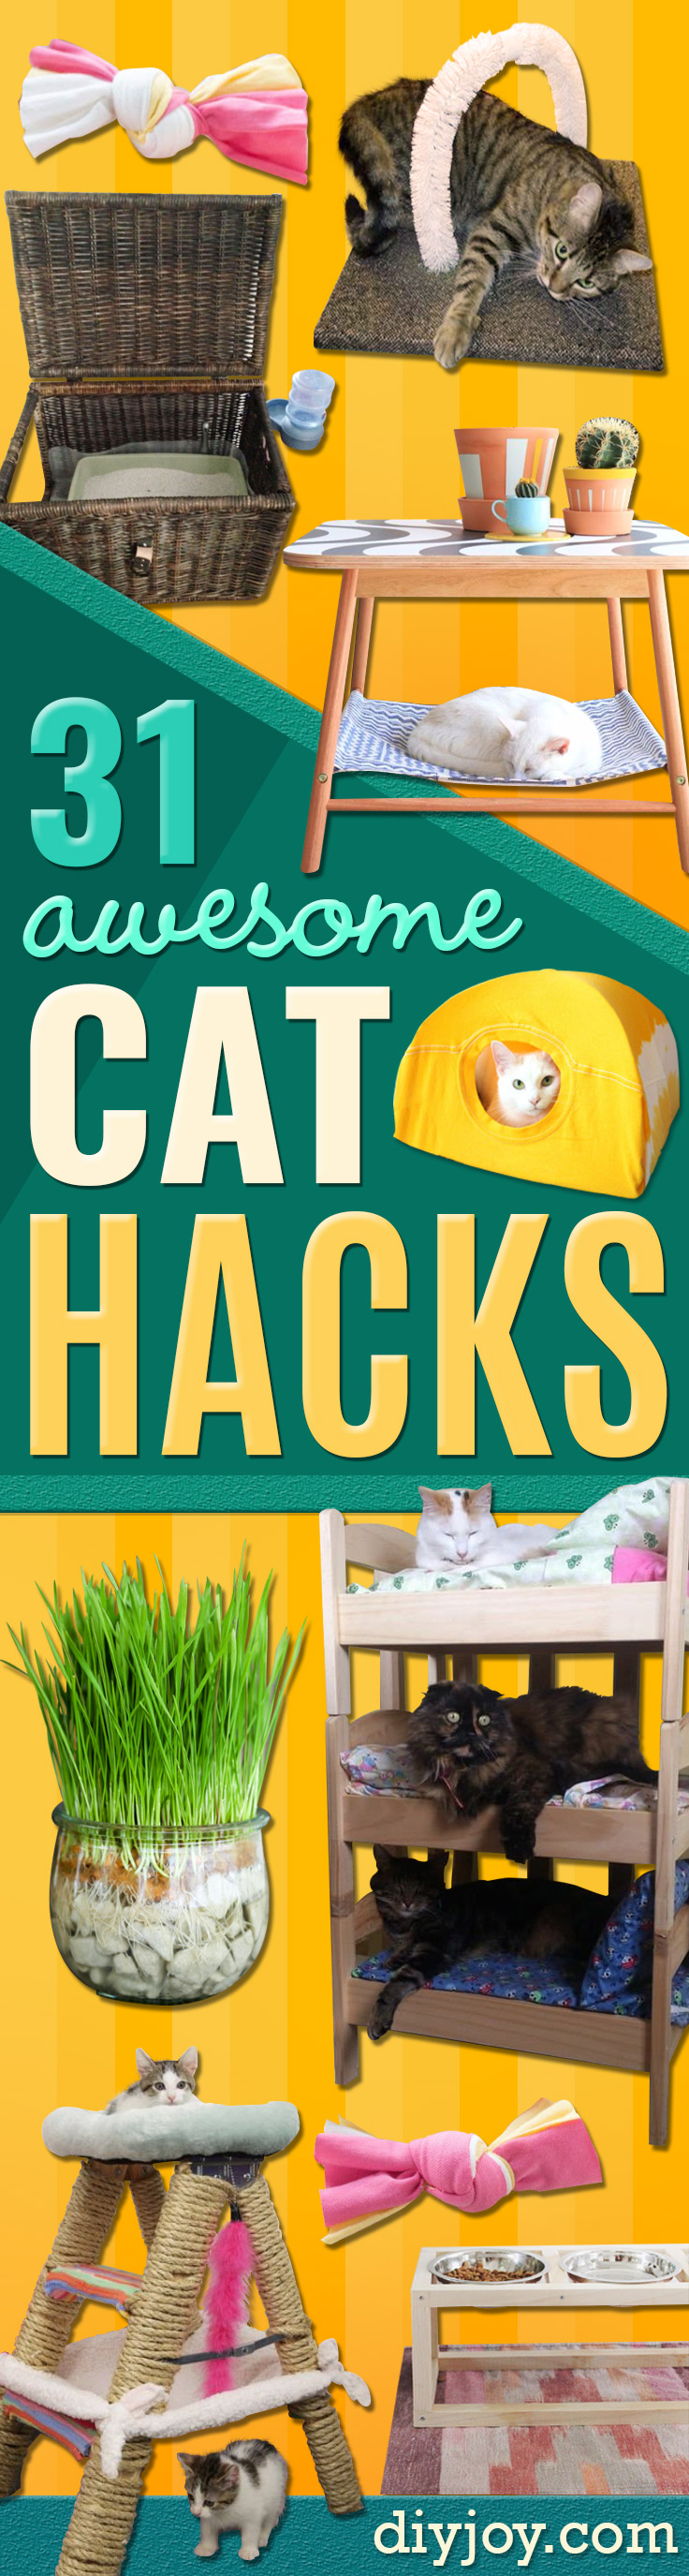 DIY Cat Hacks - Tips and Tricks Ideas for Cat Beds and Toys, Homemade Remedies for Fleas and Scratching - Do It Yourself Cat Treat Recips, Food and Gear for Your Pet - Cool Gifts for Cats